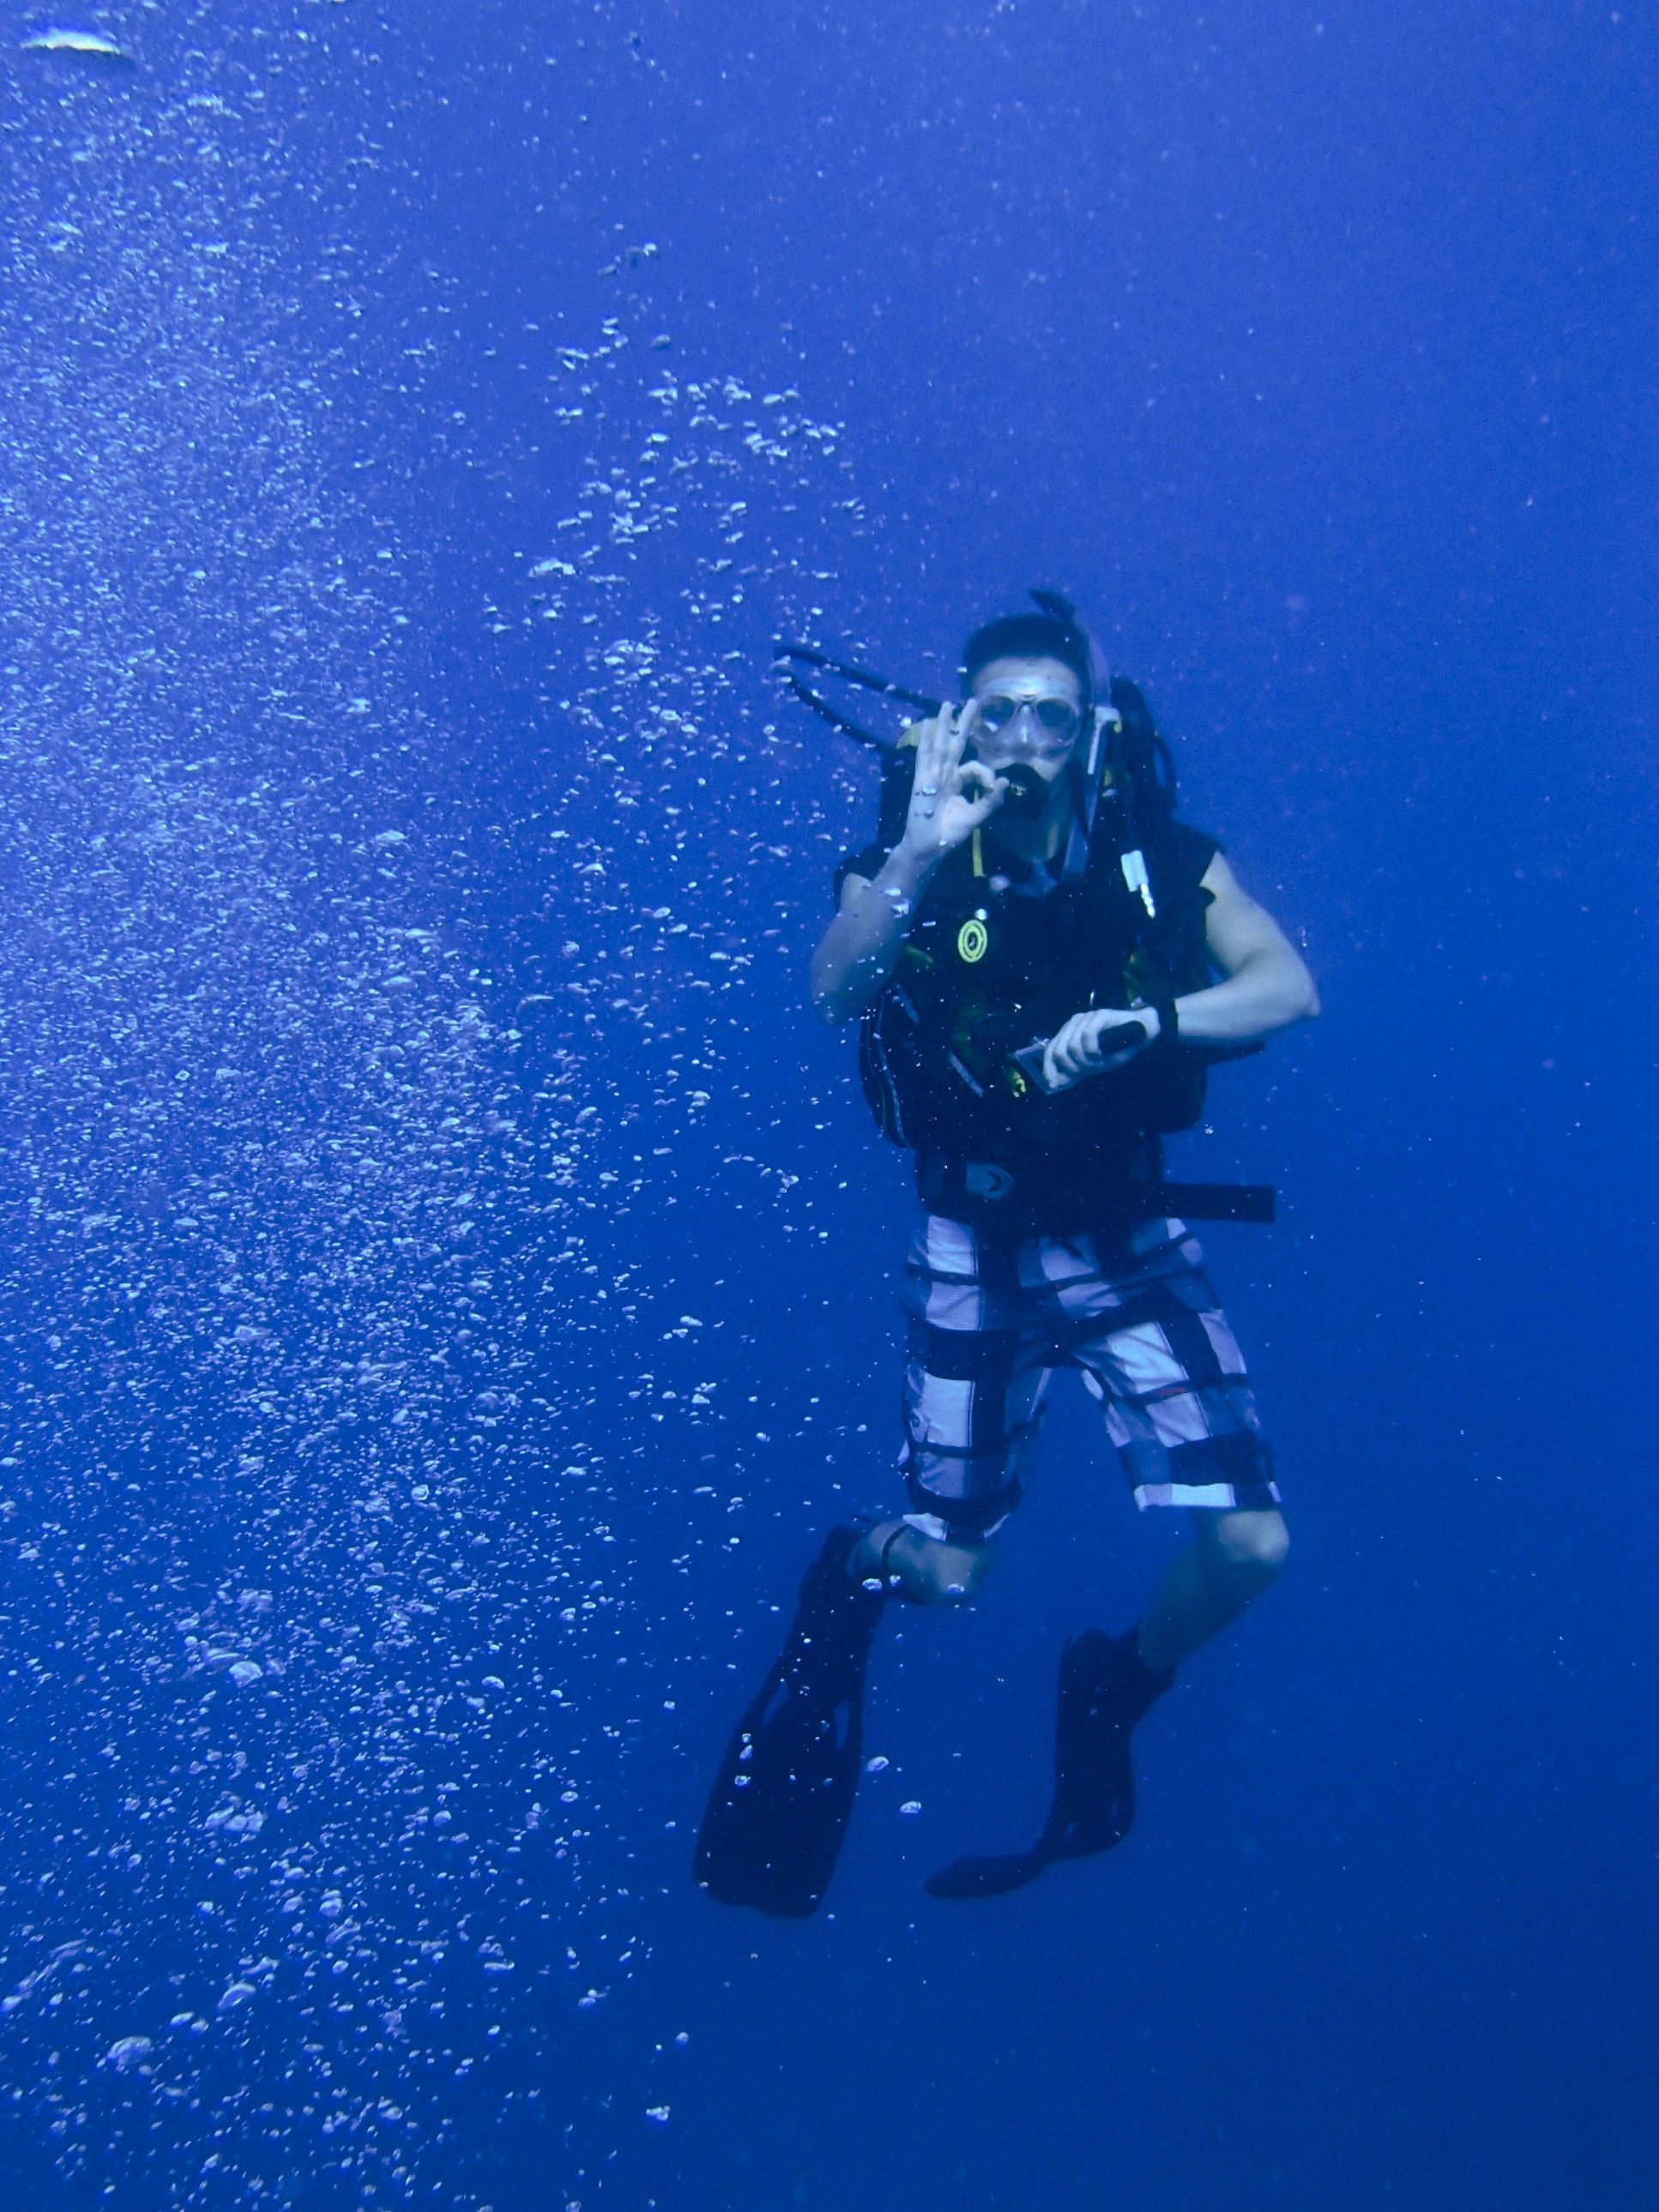 Dive in! Marine conservation projects in Fiji